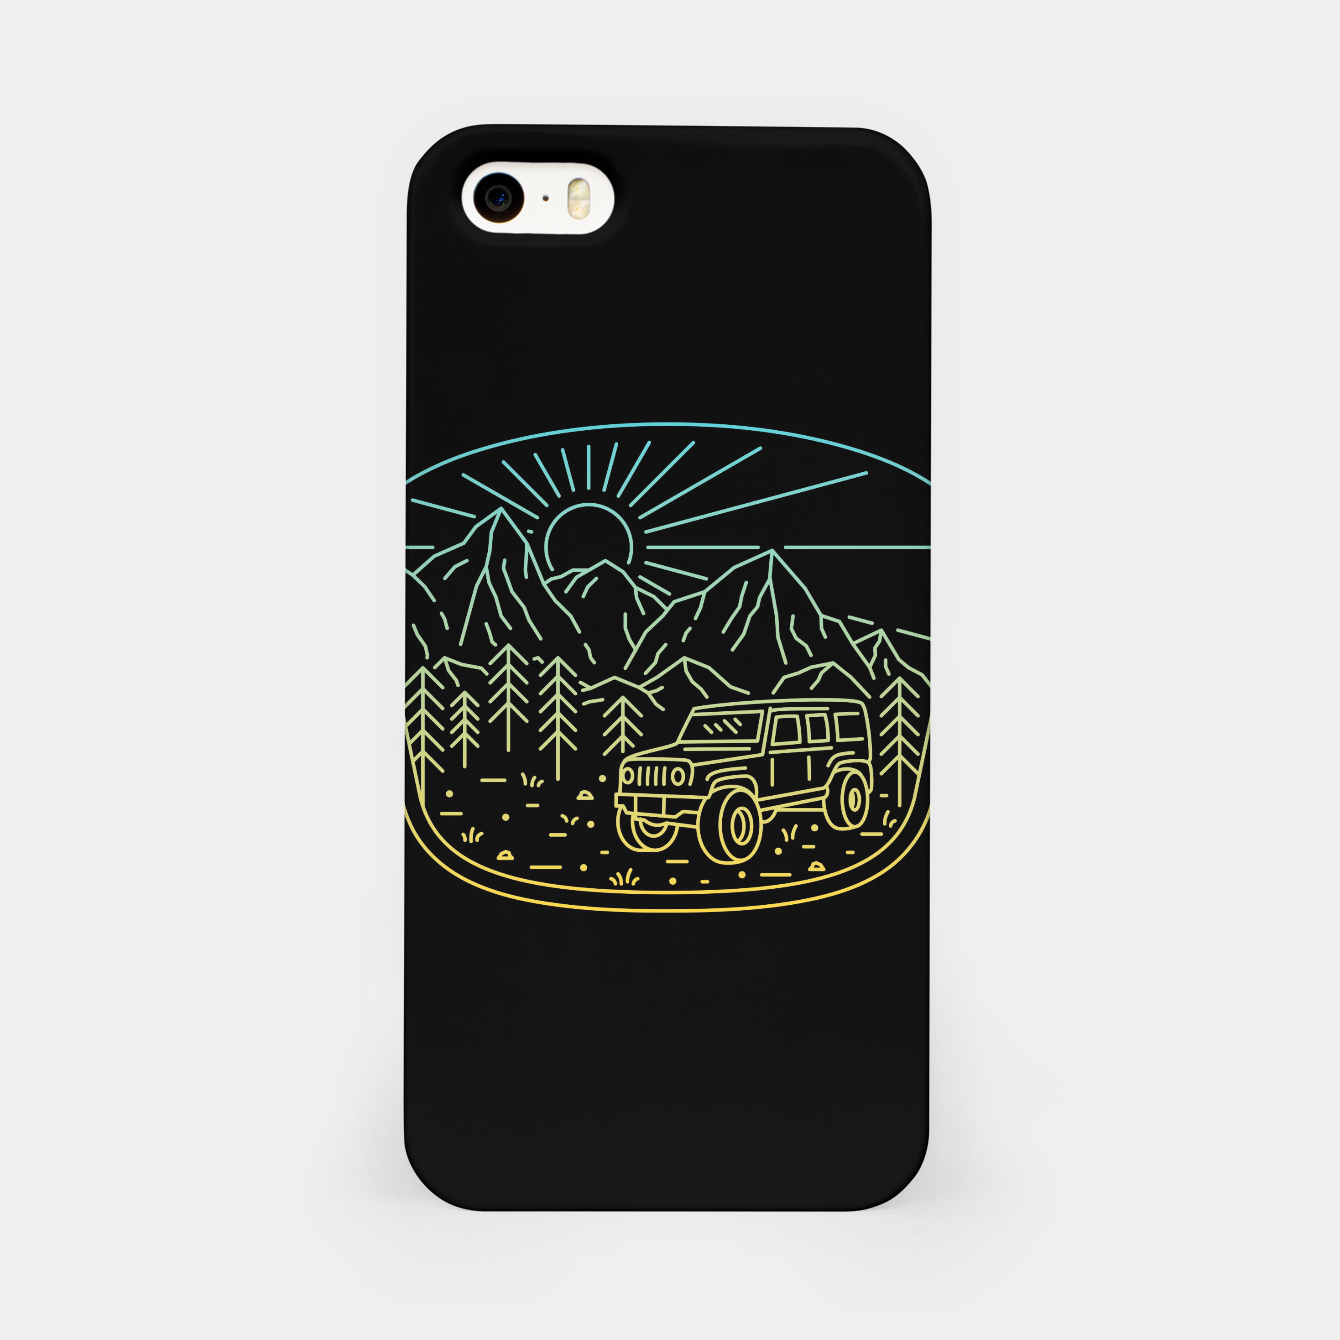 Foto Expedition iPhone Case - Live Heroes